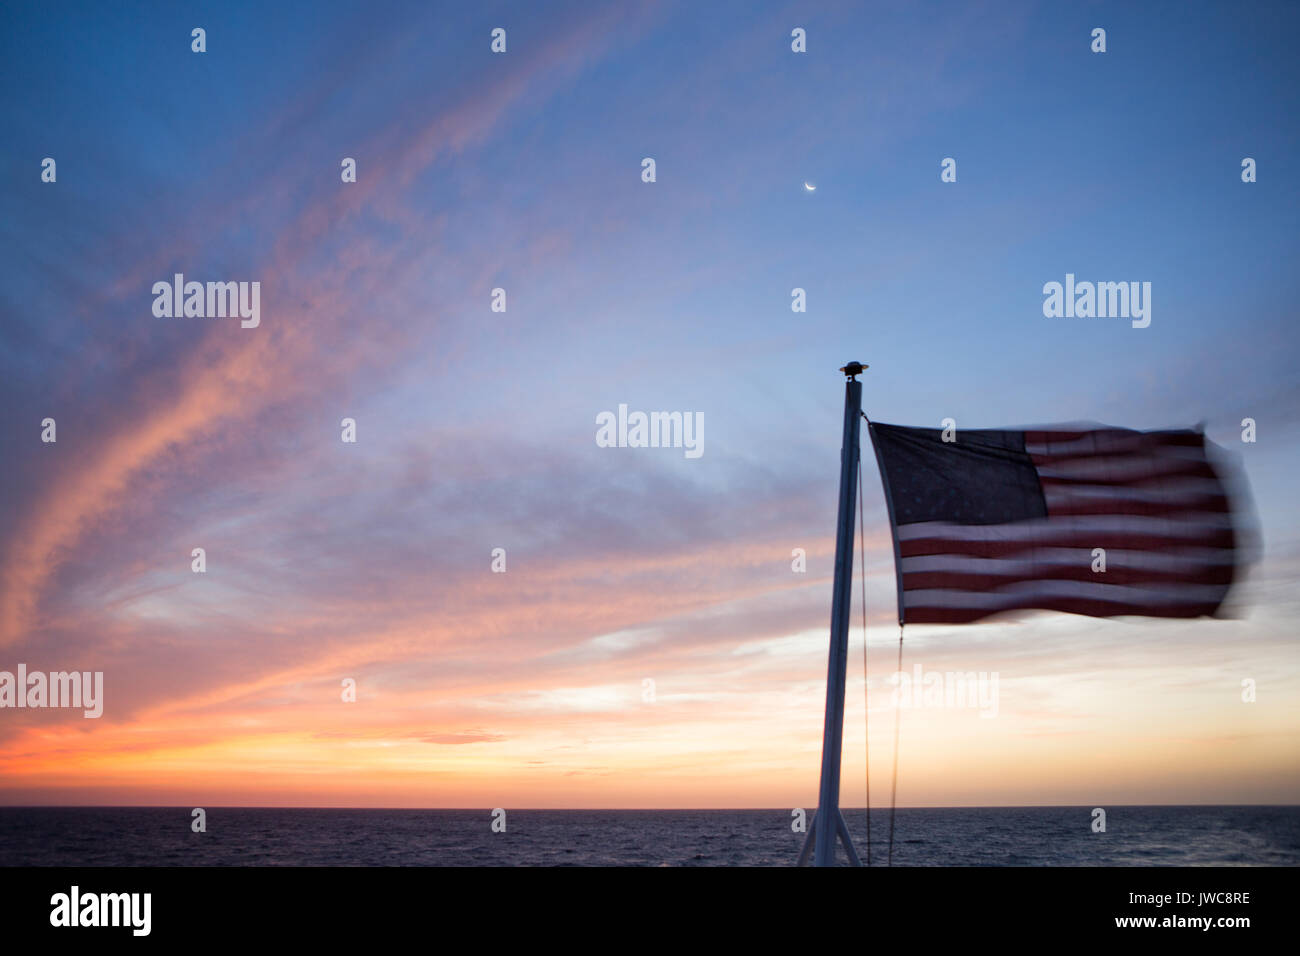 Over the waters near Isla Coiba National Park,a sliver of moon is visible as the sunrise illuminates the sky,clouds and an American Flag that flies from the National Geographic Sea Lion. - Stock Image